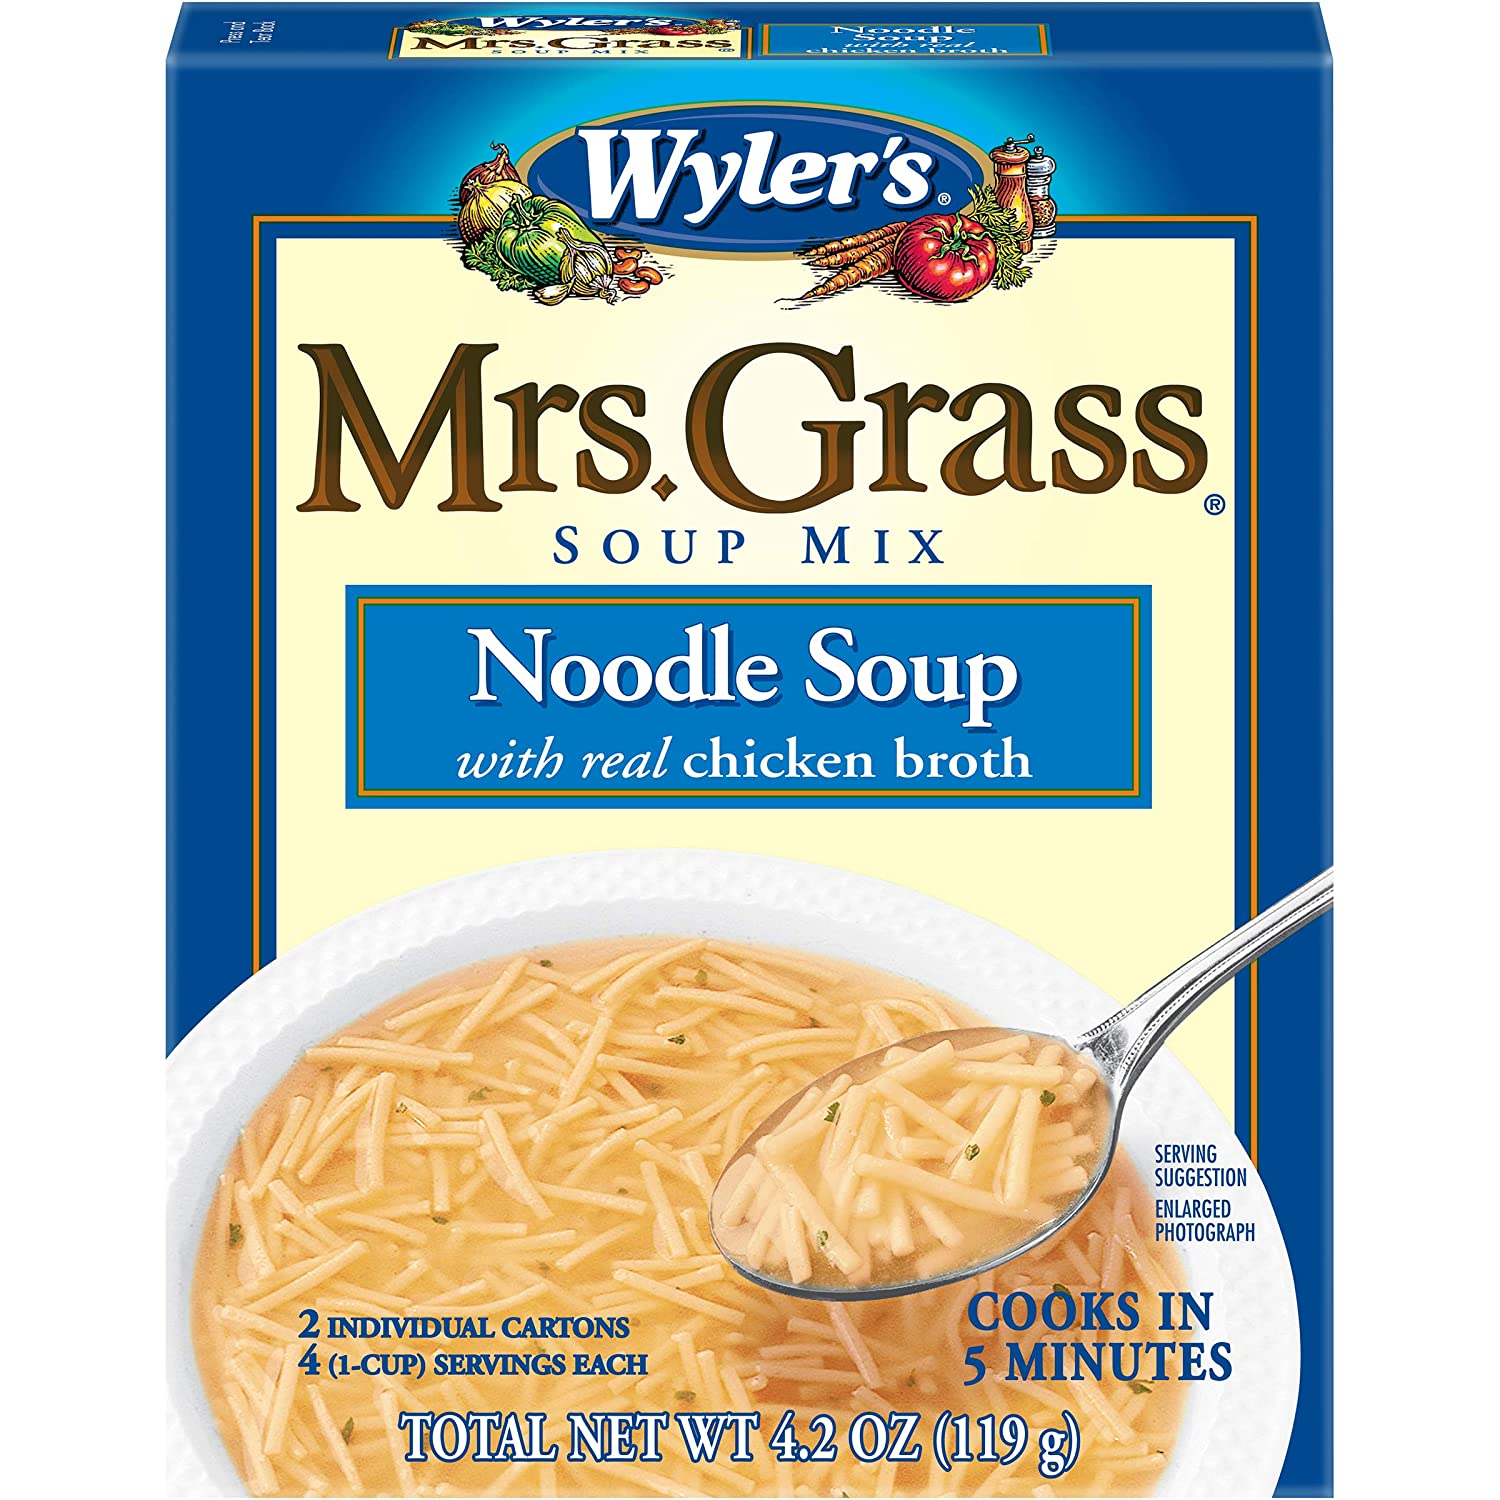 Mrs. Grass Noodle Soup All stores are sold 4.2 Mix quality assurance Box oz